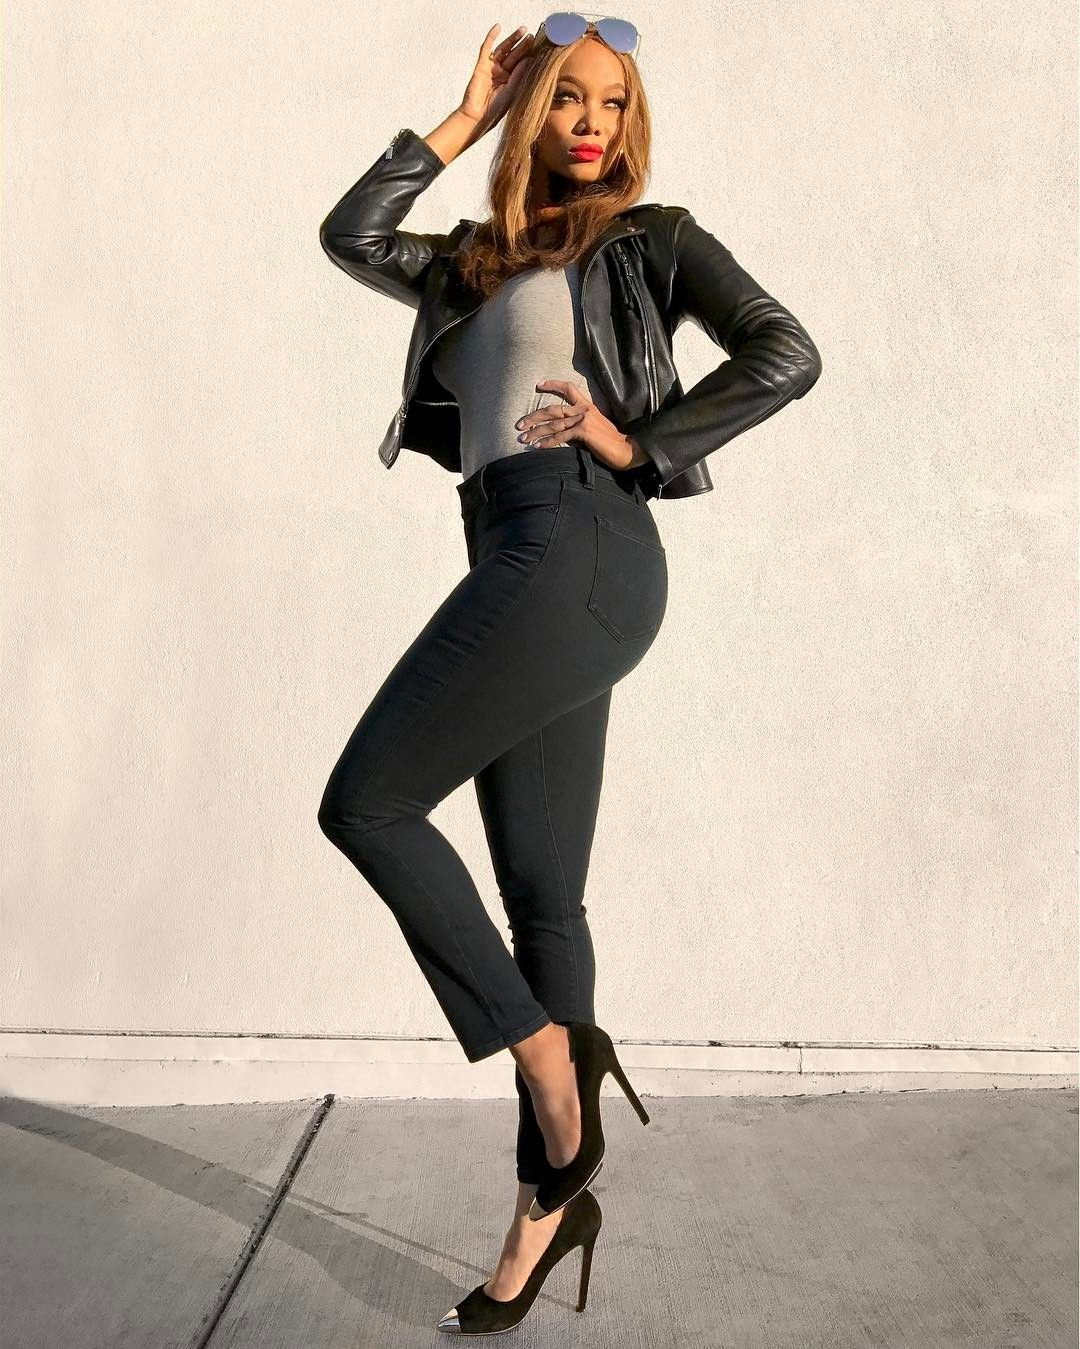 9e6e58ba2cc5c9 'America's Got Talent' hires Tyra Banks as new host to replace Nick Cannon  America's Got Talent has officially signed on Tyra Banks as its new host.  #AGT. '